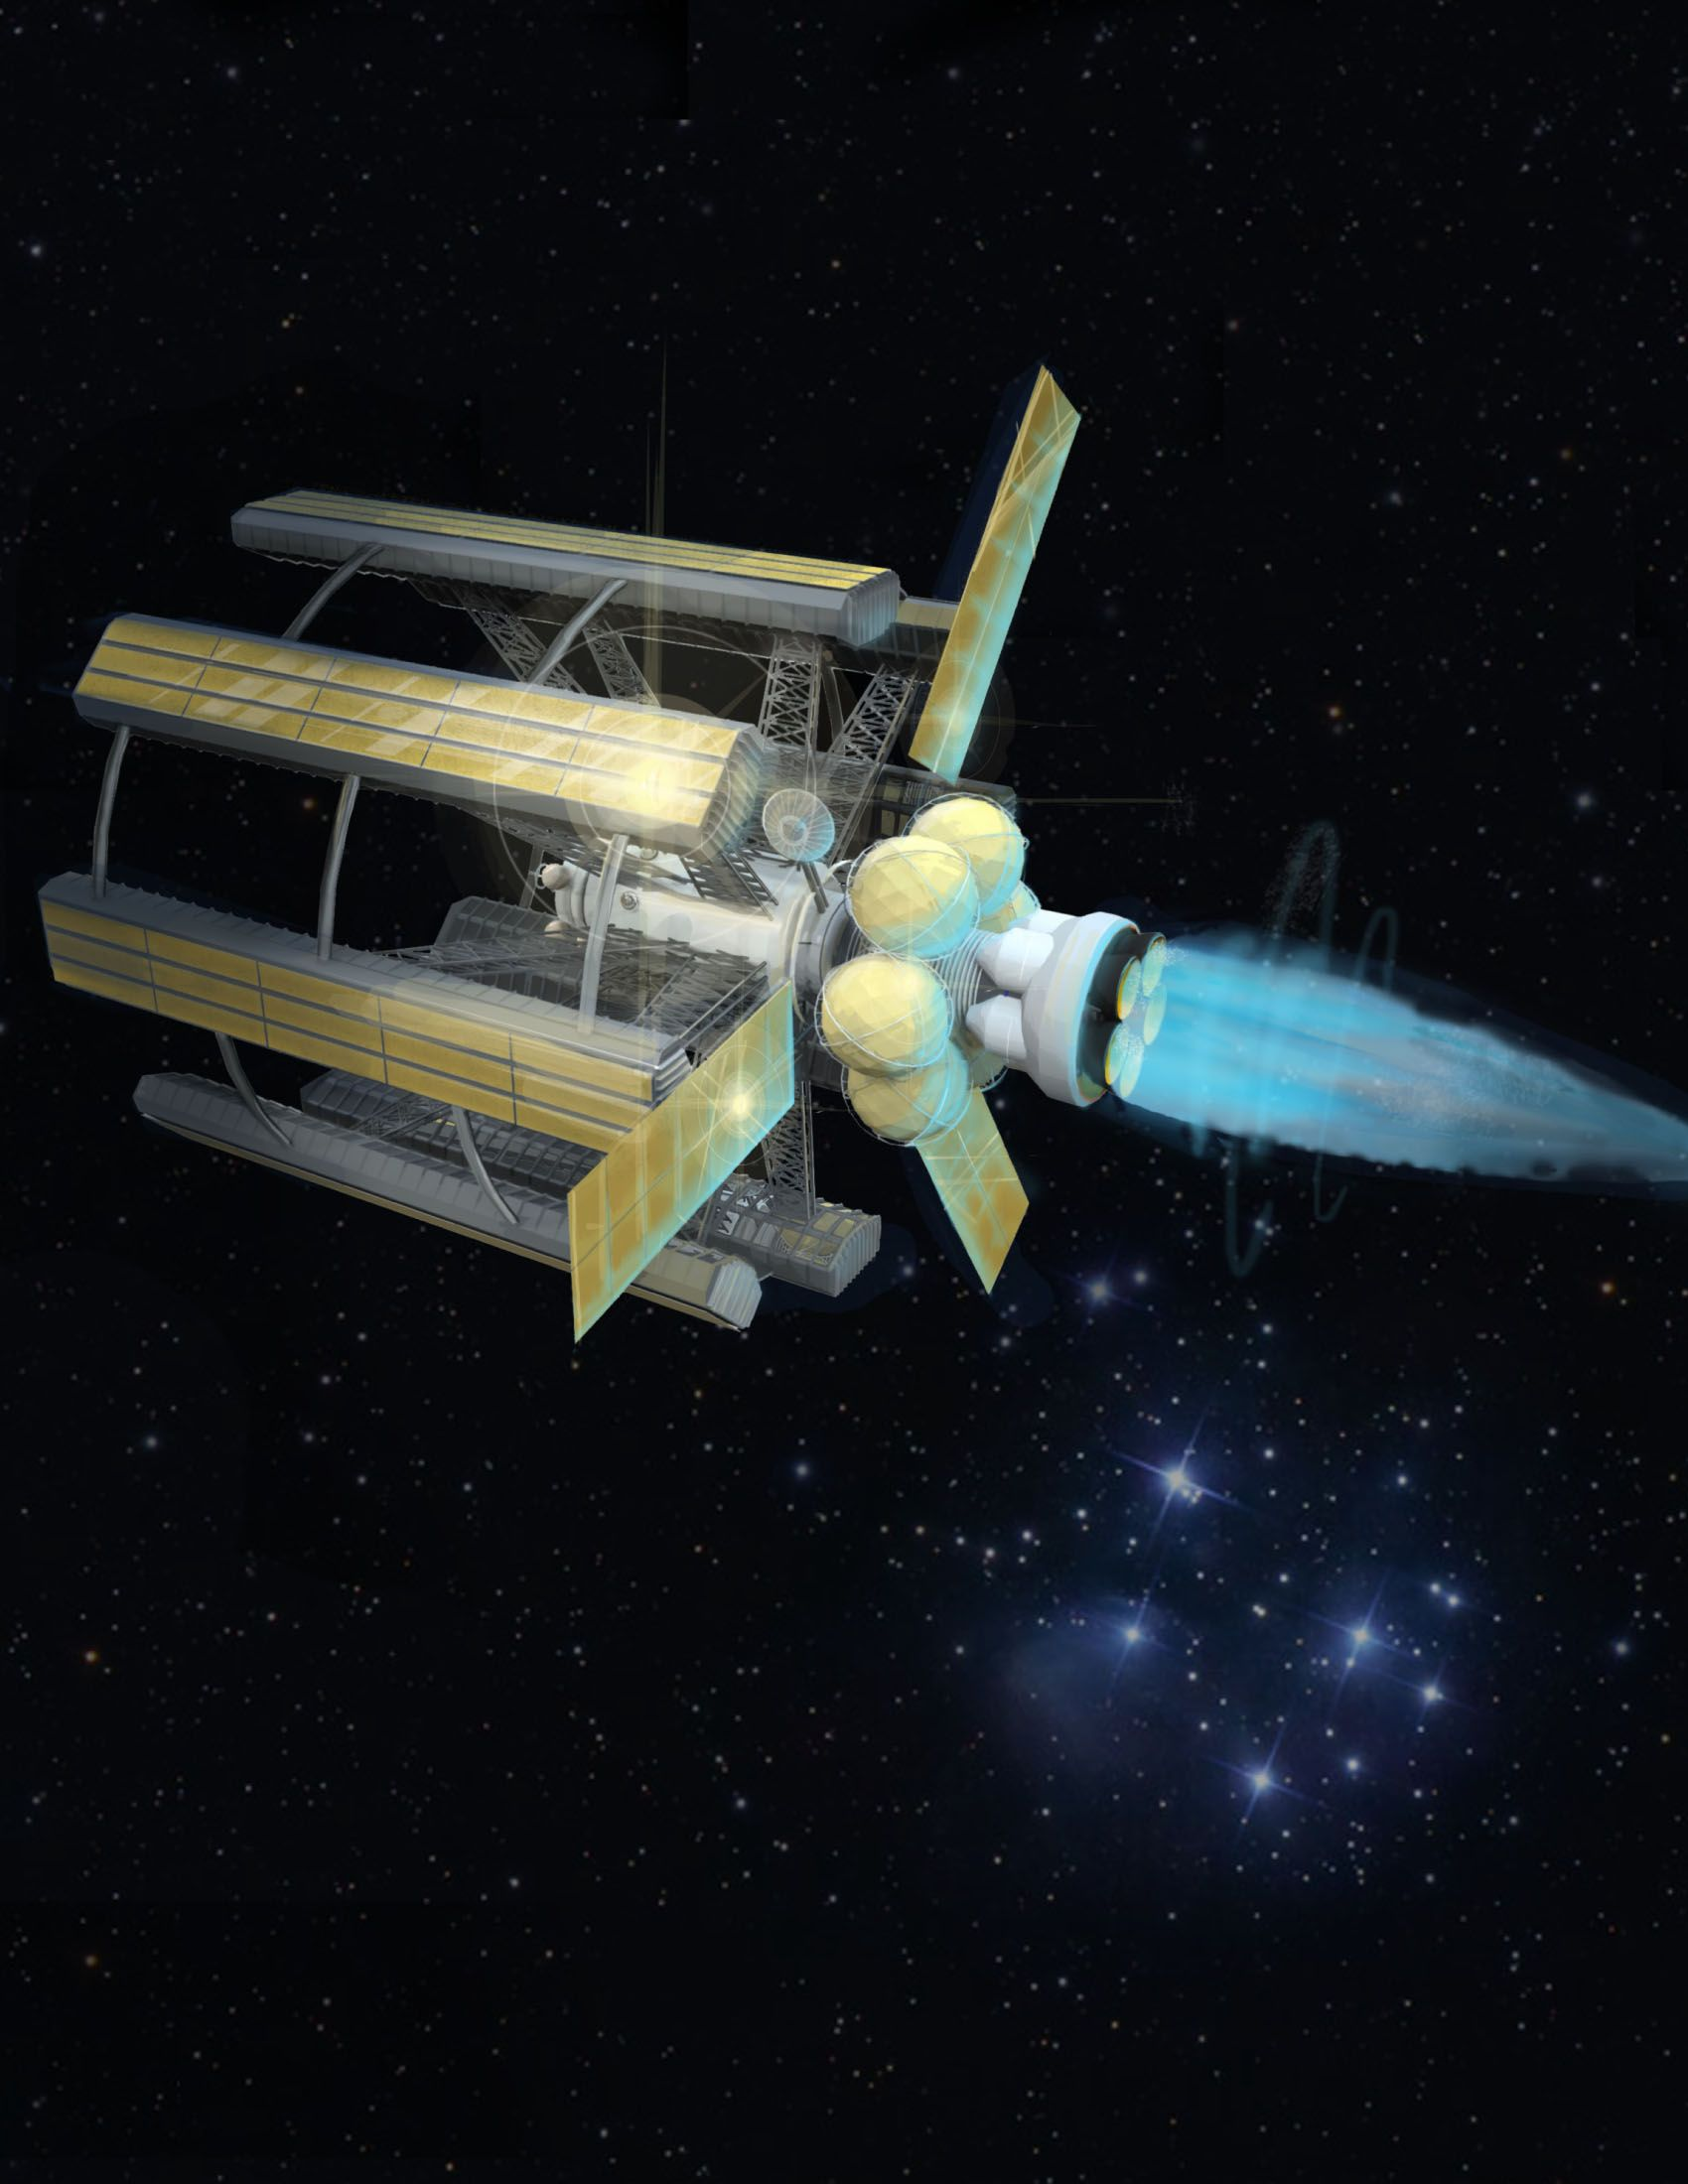 interplanetary spacecraft - photo #7